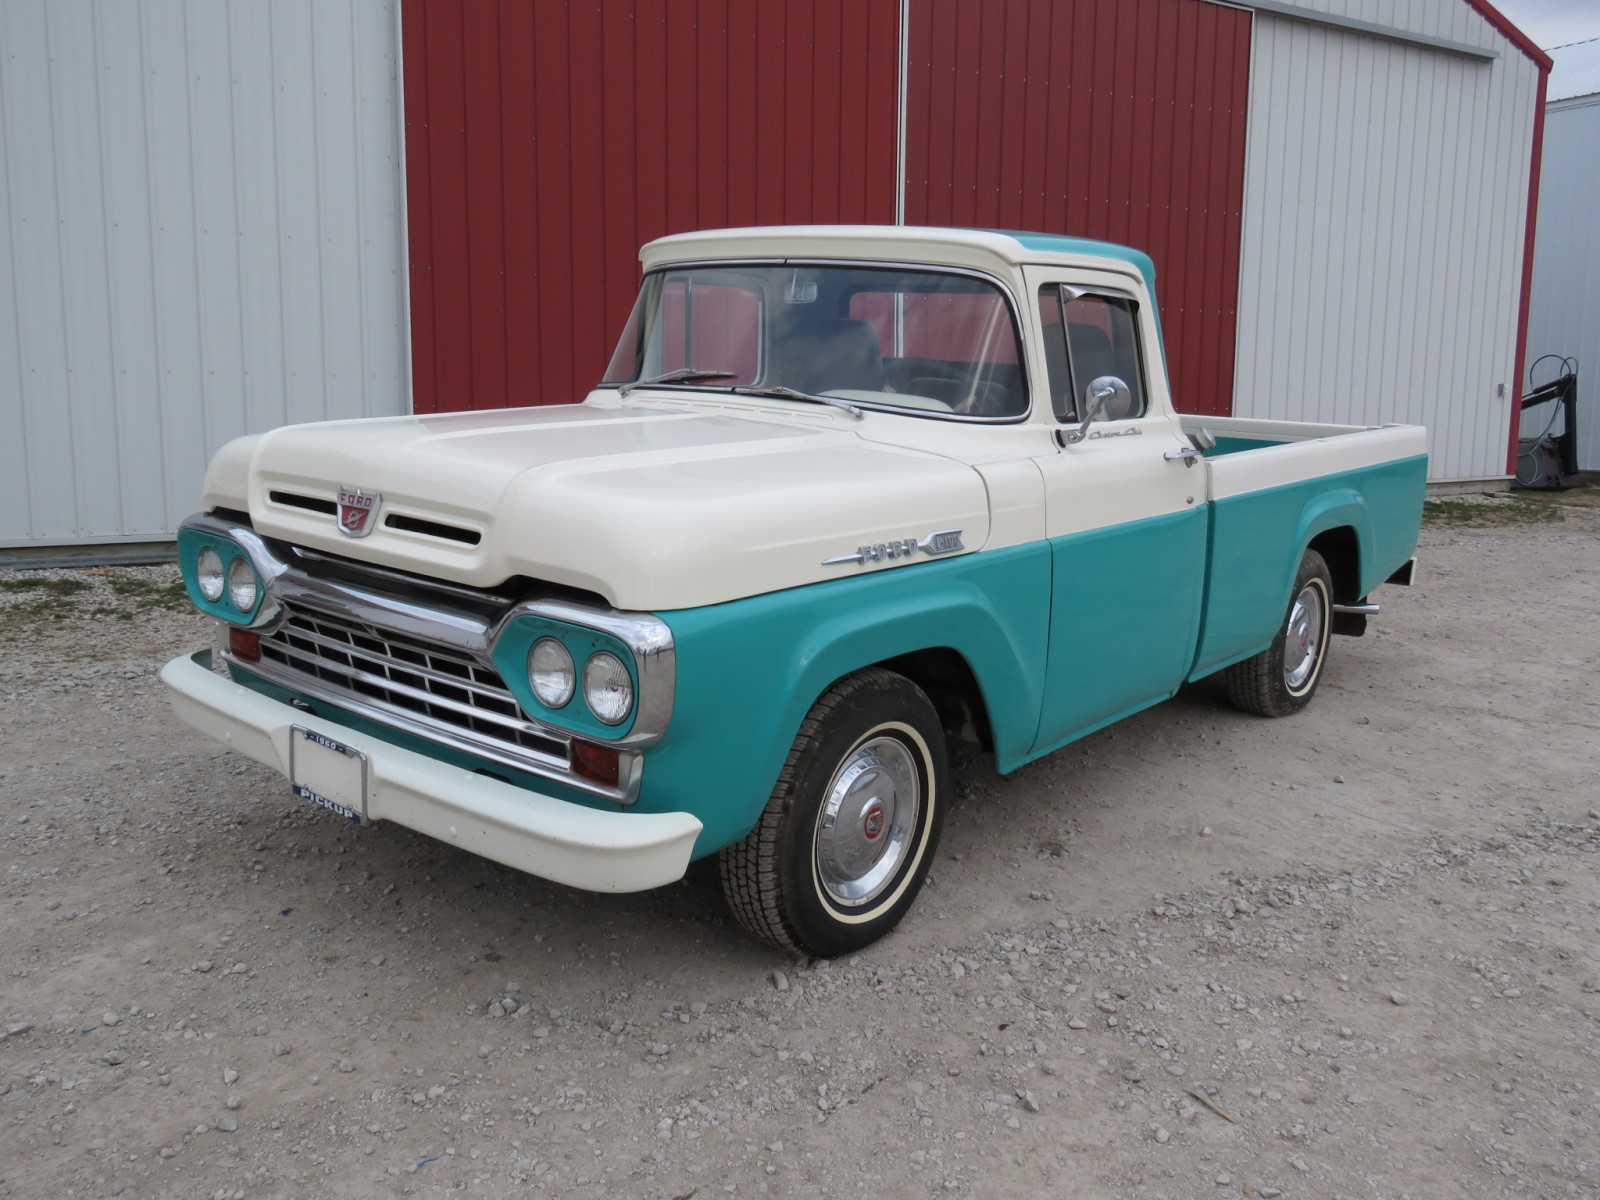 1960 Ford F100 Pickup - Image 1